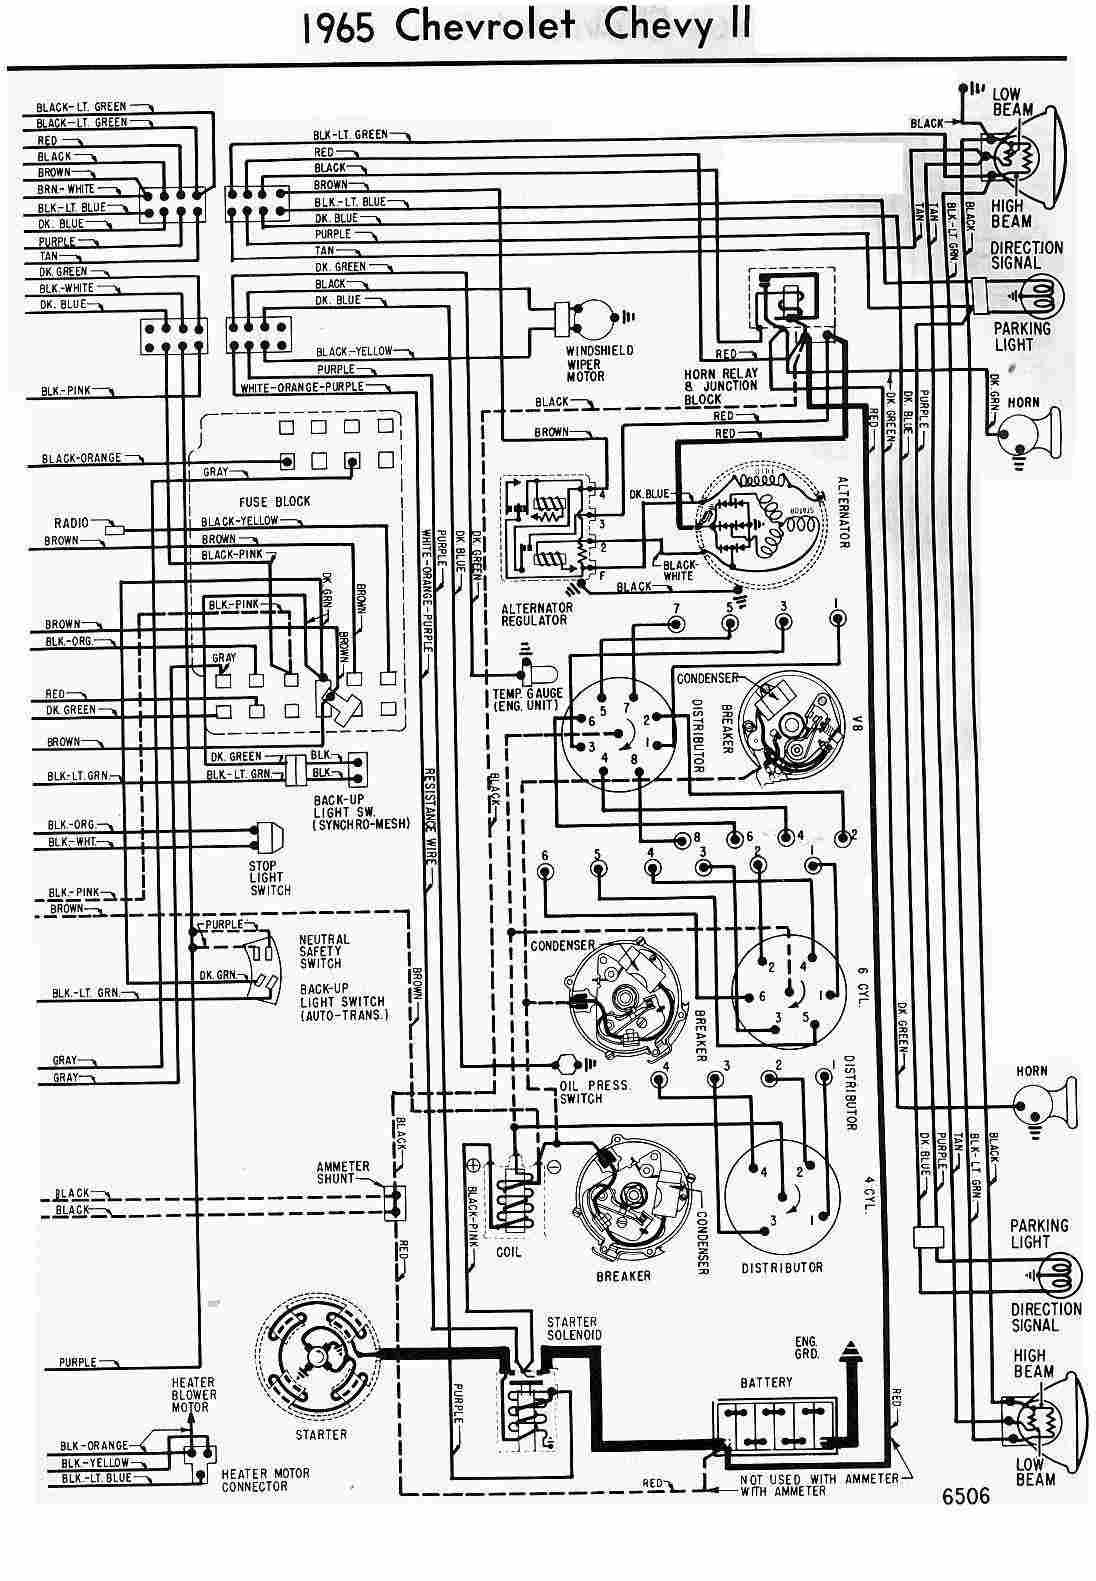 wiring diagrams free image wiring diagram engine schematic wire rh jadecloud co Automotive Wiring Diagrams Cadillac Engine Parts Diagram